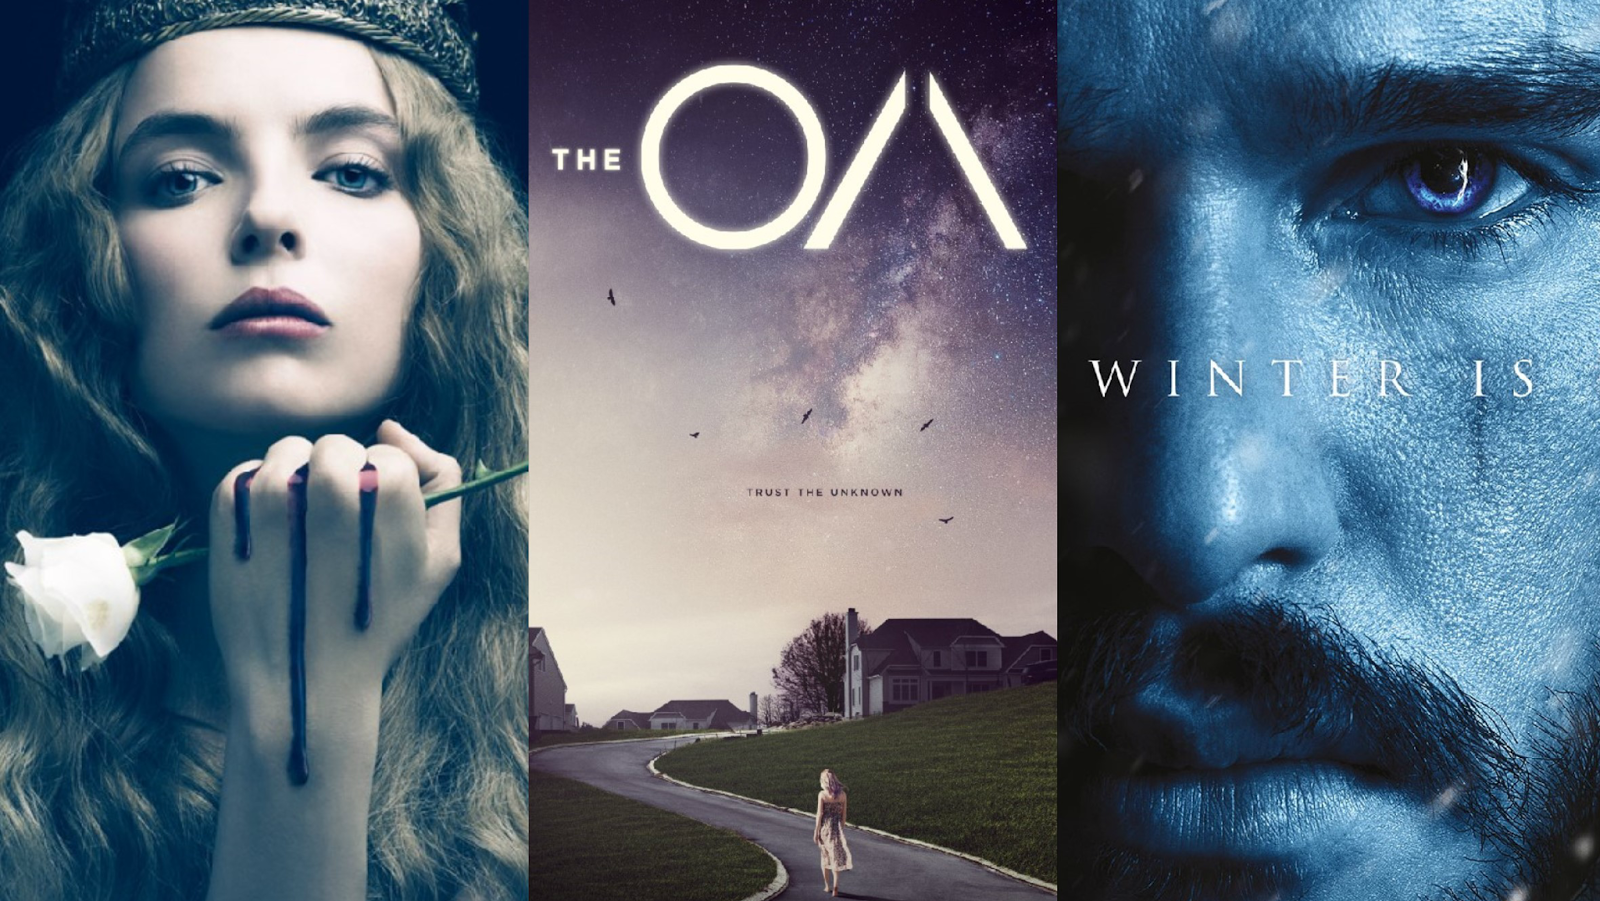 Promo posters for The White Princess, The OA and Game of Thrones